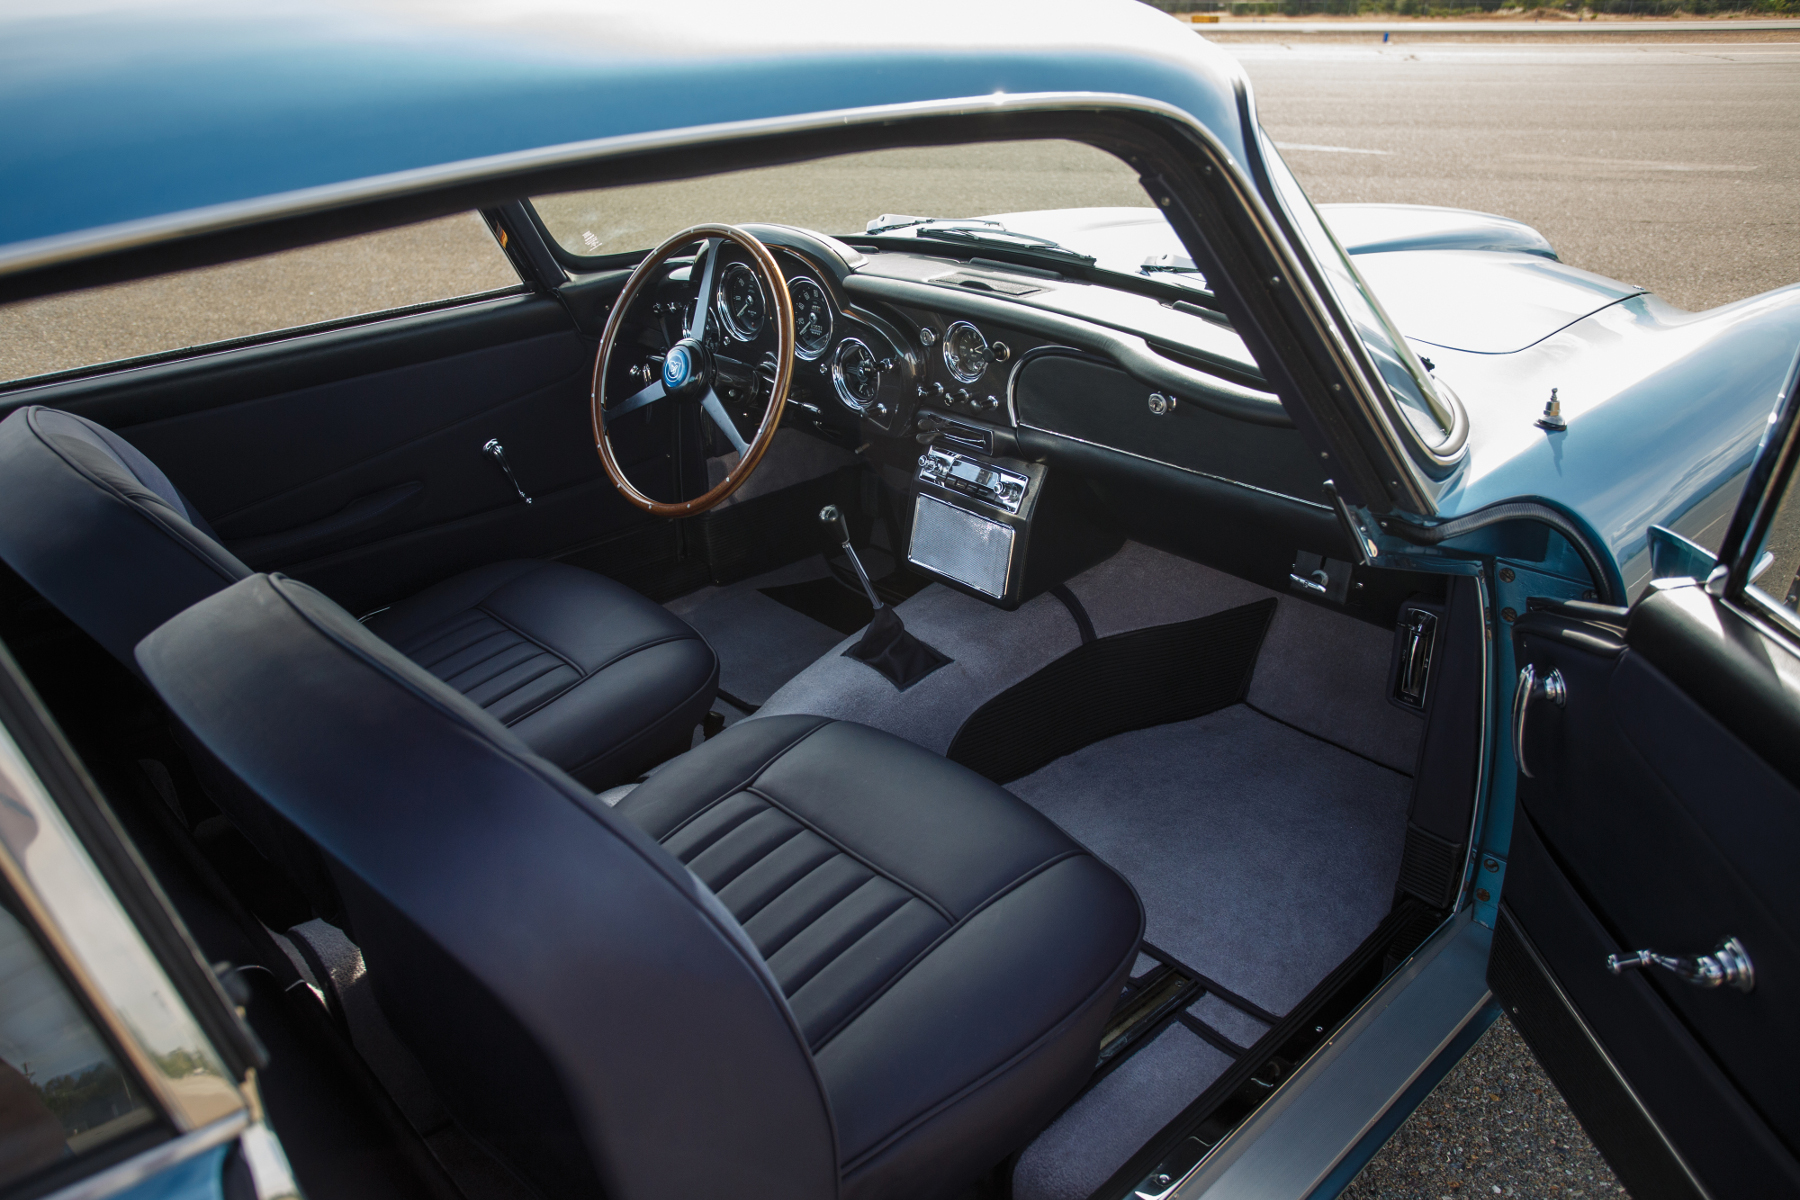 The interior of the DB4. Clean and uncluttered; the simplicity providing an impression of spaciousness.